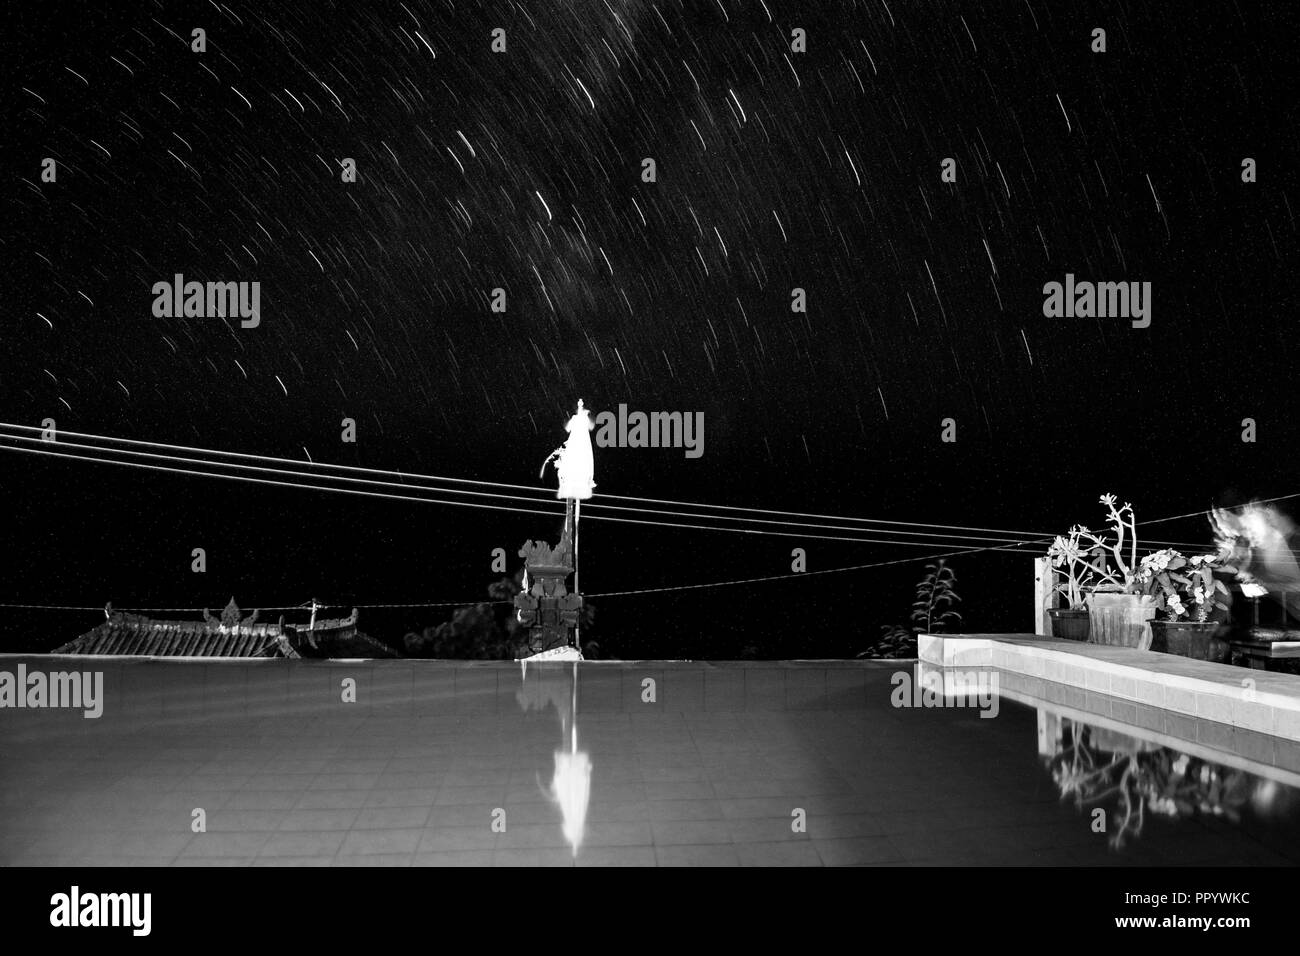 Landscape of the milky way in black and white - Stock Image